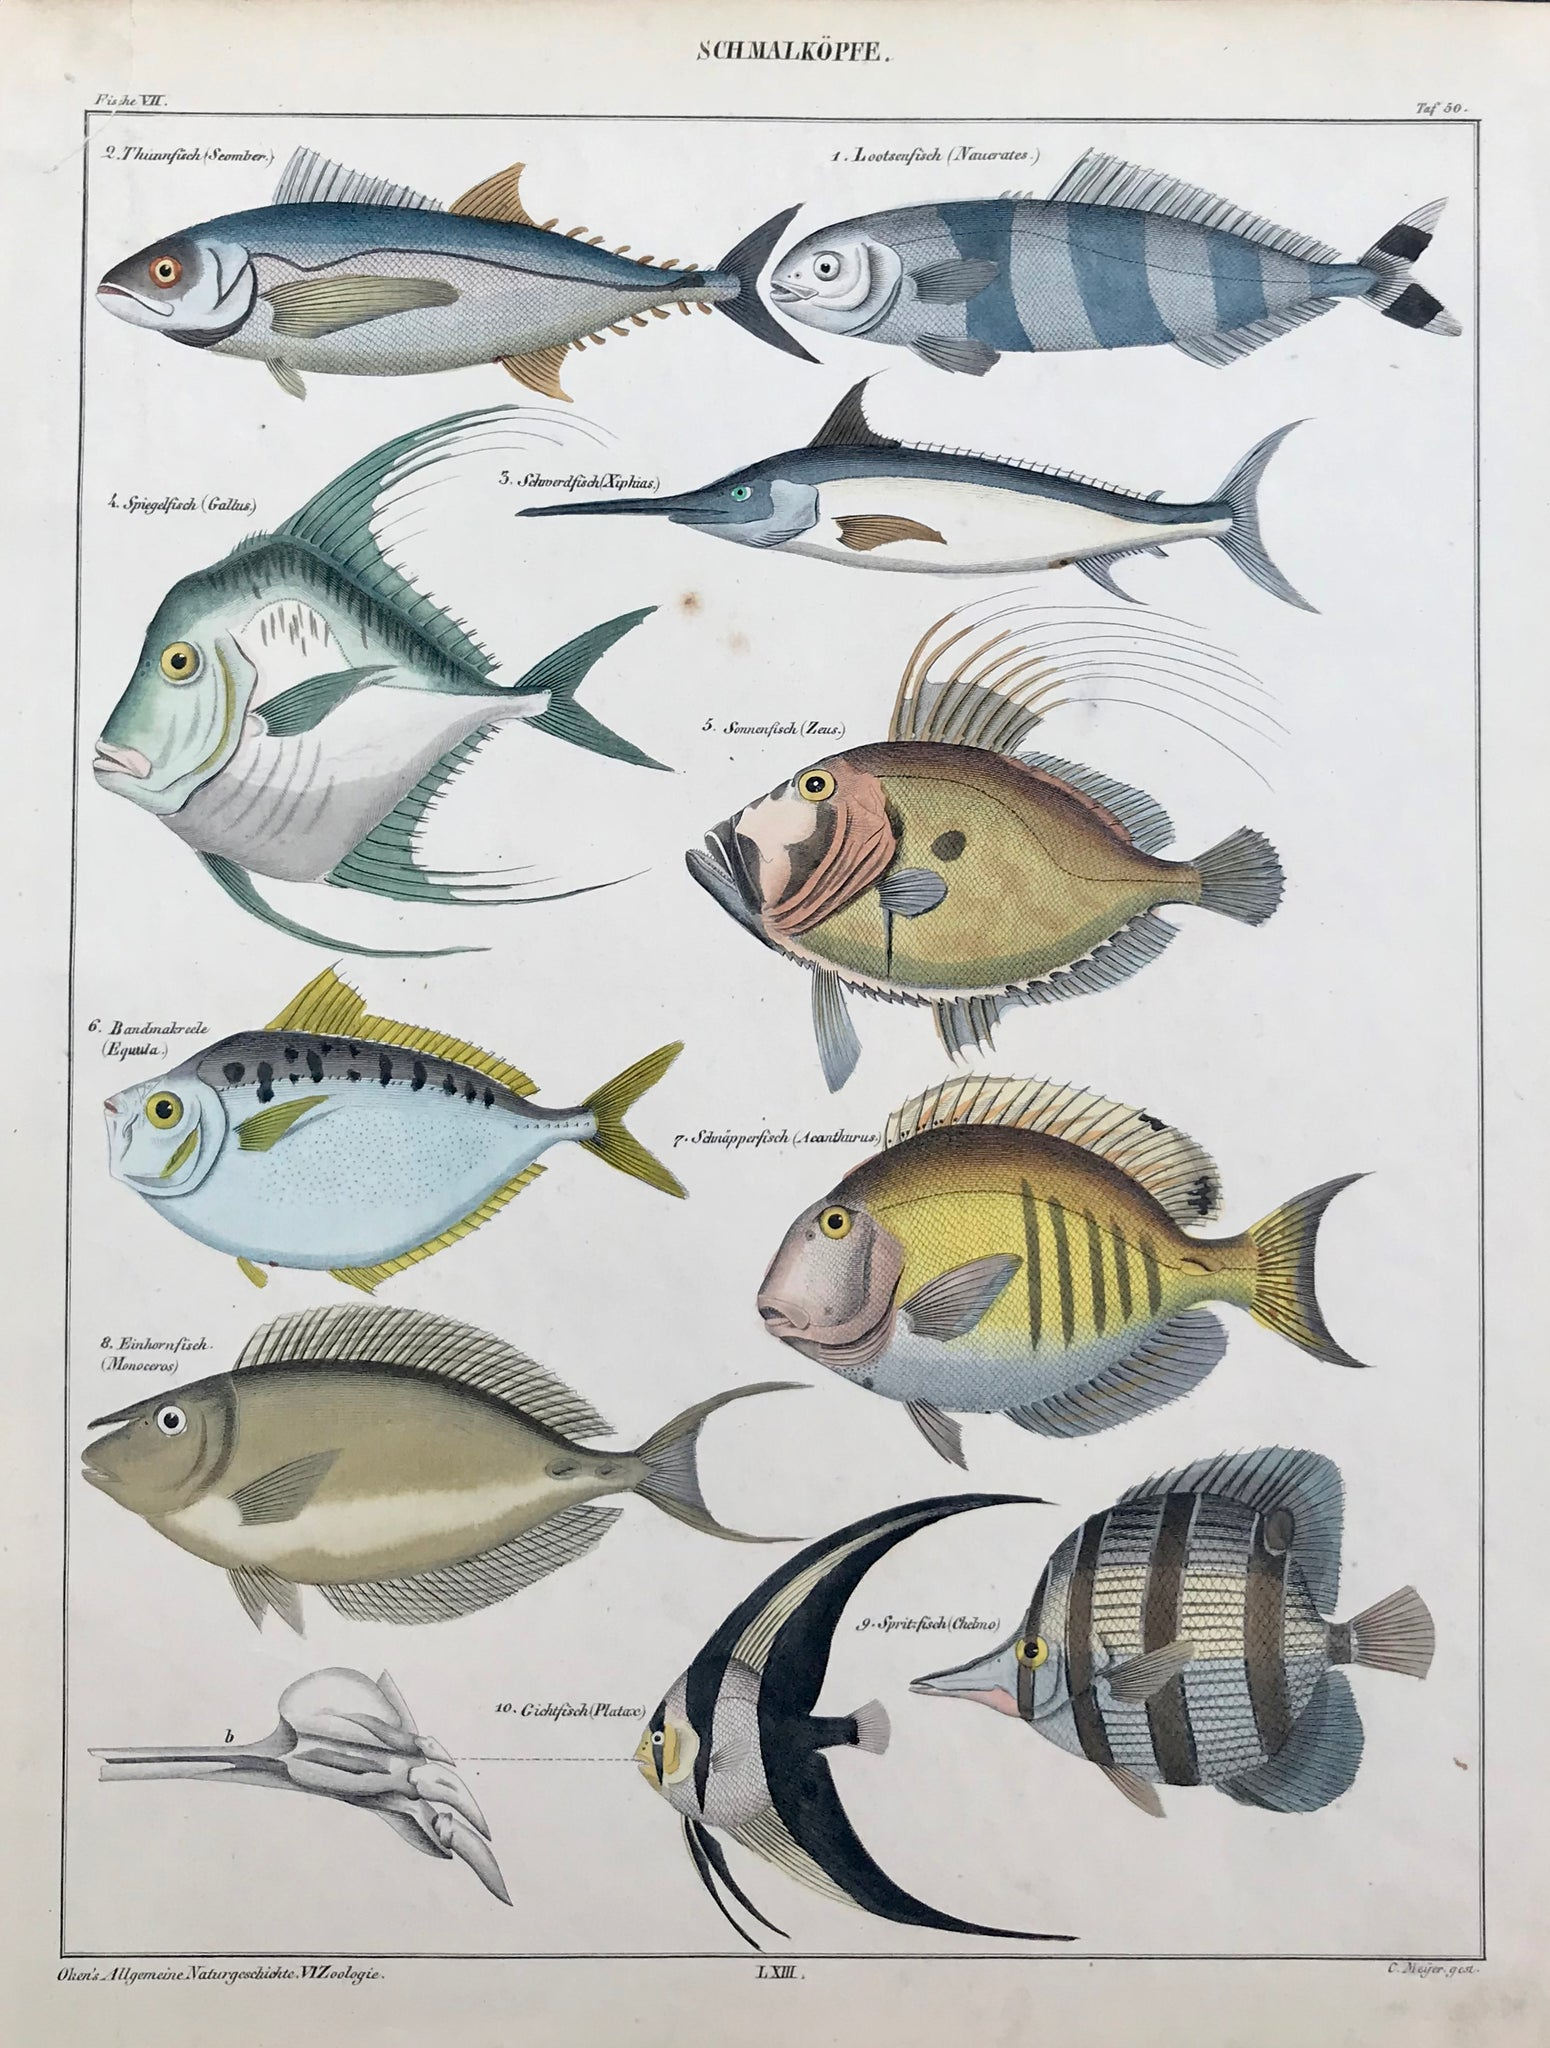 """Schmalkoepfe"" (Small Heads)  Names of fish show: Thunnfisch(Seomber), Lootsen (Naucrates), Schwordfisch ( Xiphias), Spiegelfisch ( Galbus), Sonnenfisch (zeus), Bandmakreele (Equula ), Schwaepperfisch ( Acanthurus), Einhornfisch (Monoceros), Gichtfisch (Platax), Spritfisch (Chelmo).  Steel engraving by C. Meijer from ""Oken´s Allgemeine Naturgeschichte. VI Zoologie"", ca 1850. Very fine original hand coloring. A few very light spots and small repaired tear in upper left corner.  29.4 x 22.5 cm ( 11.5 x 8.8 "")"